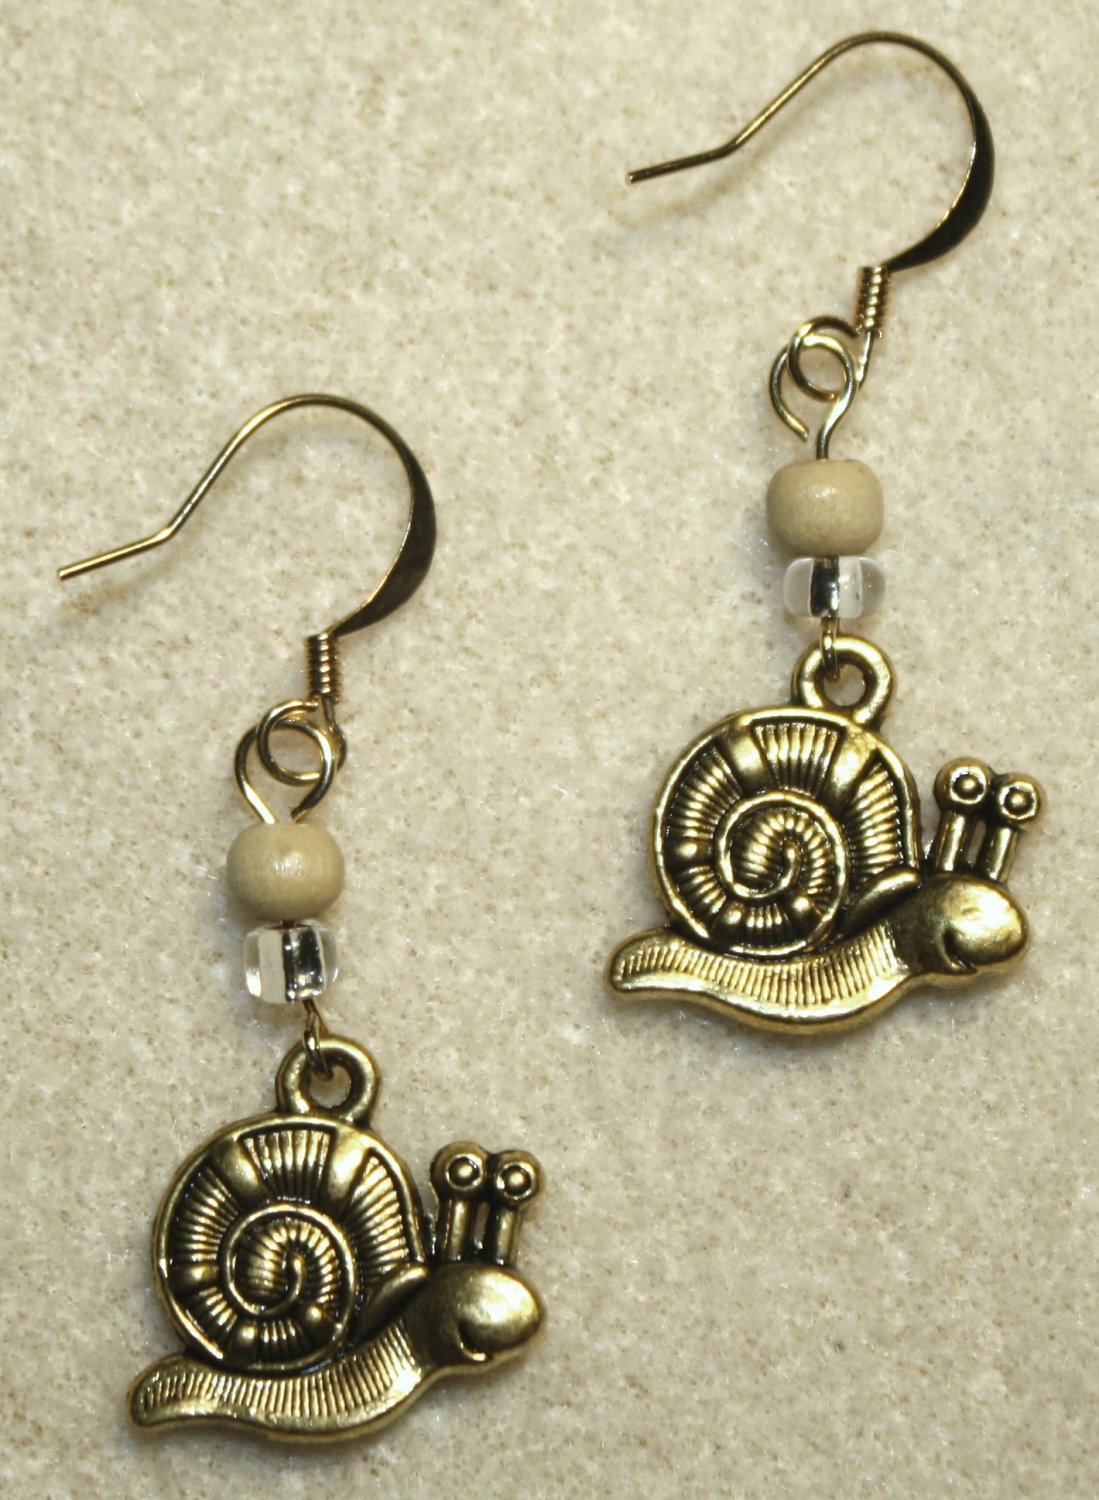 Golden Snail Earrings - Item #E407